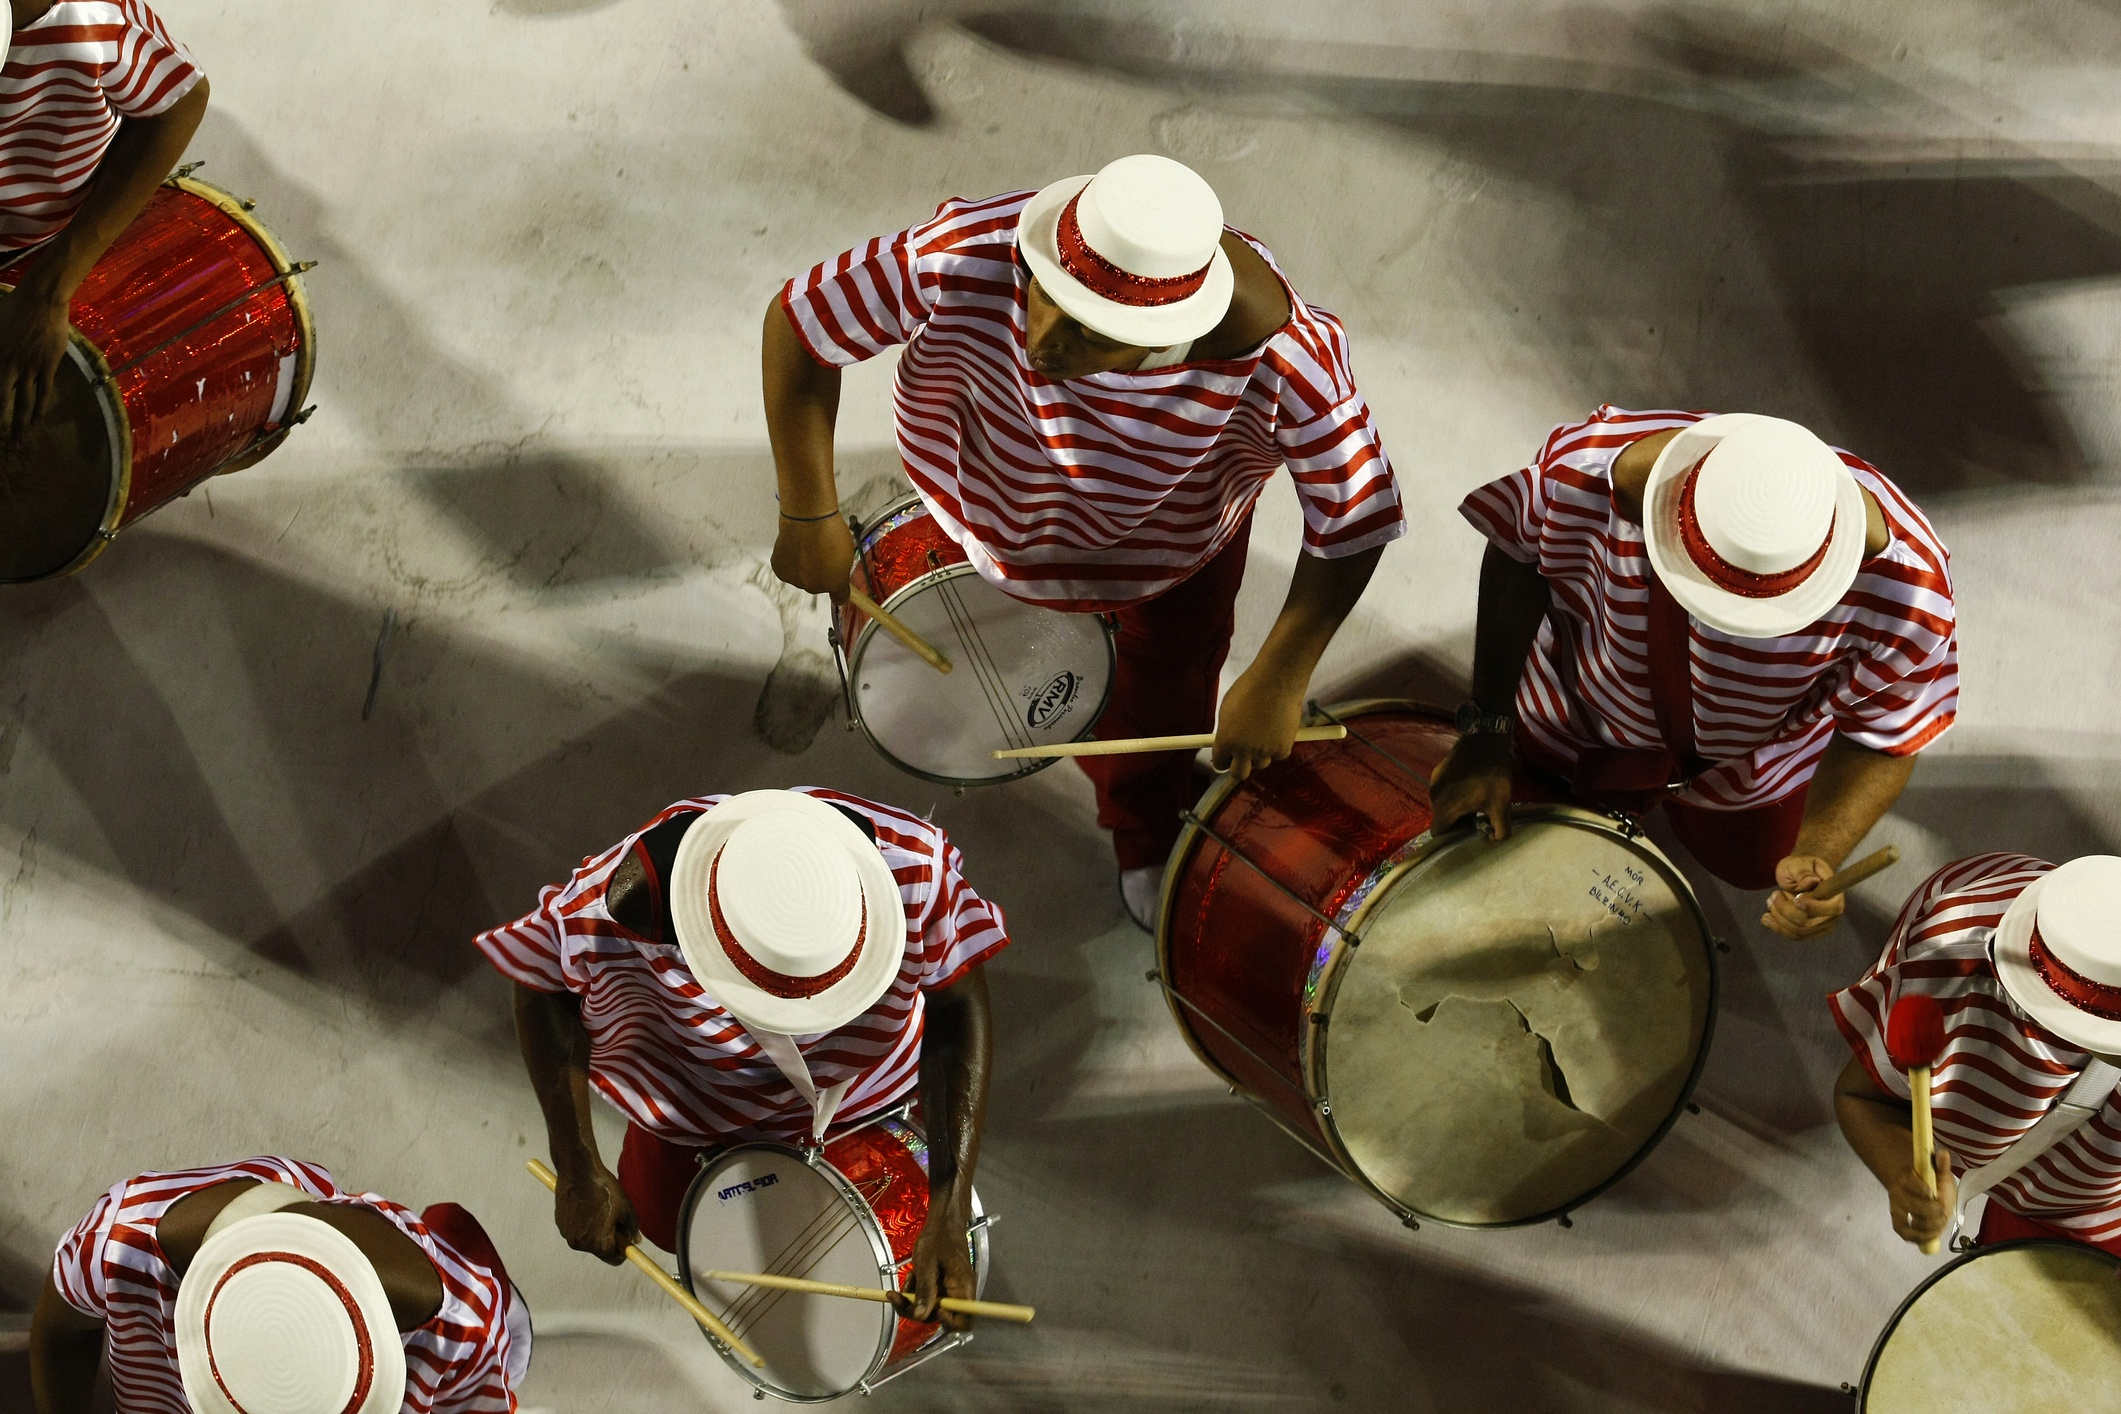 Best places to experience samba in Rio